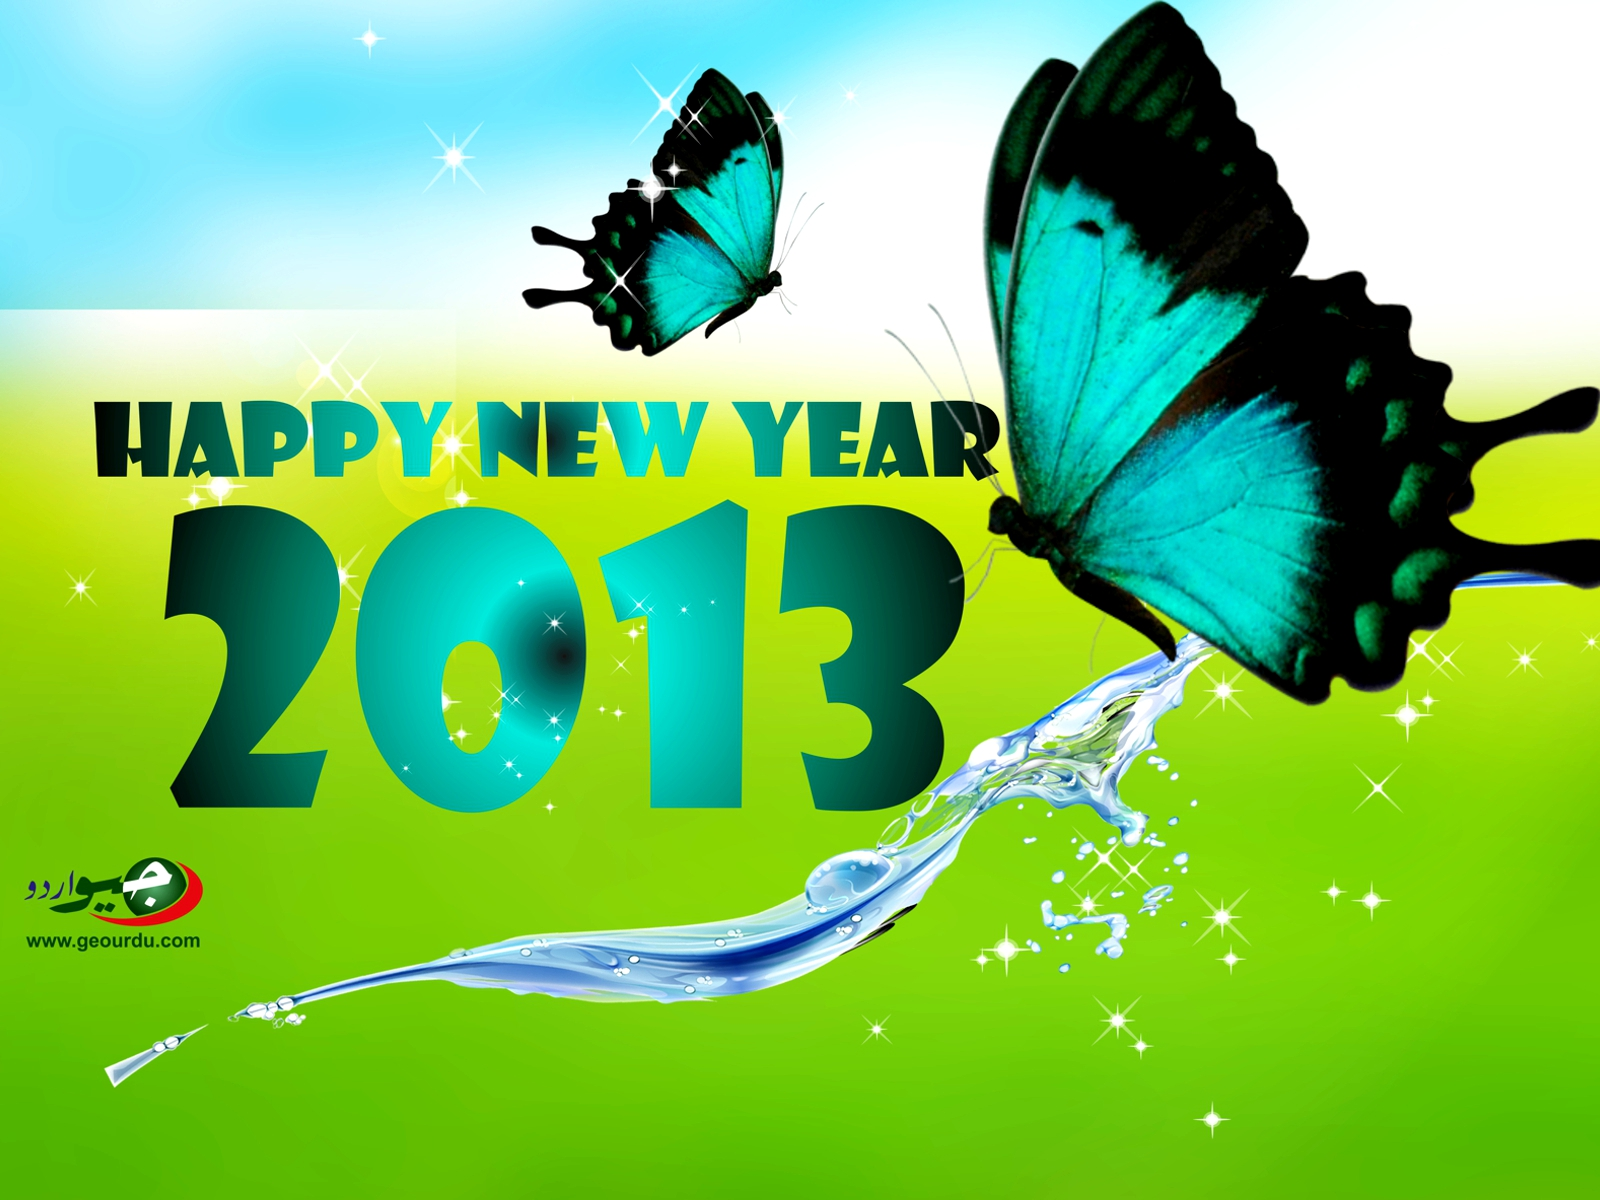 http://4.bp.blogspot.com/-rDw9fChuVUk/UNzXLtw_WEI/AAAAAAAAAV0/5EUQyDbR5Xk/s1600/2013-3-Happy-New-Year-2013-HD-Wallpapers.jpg